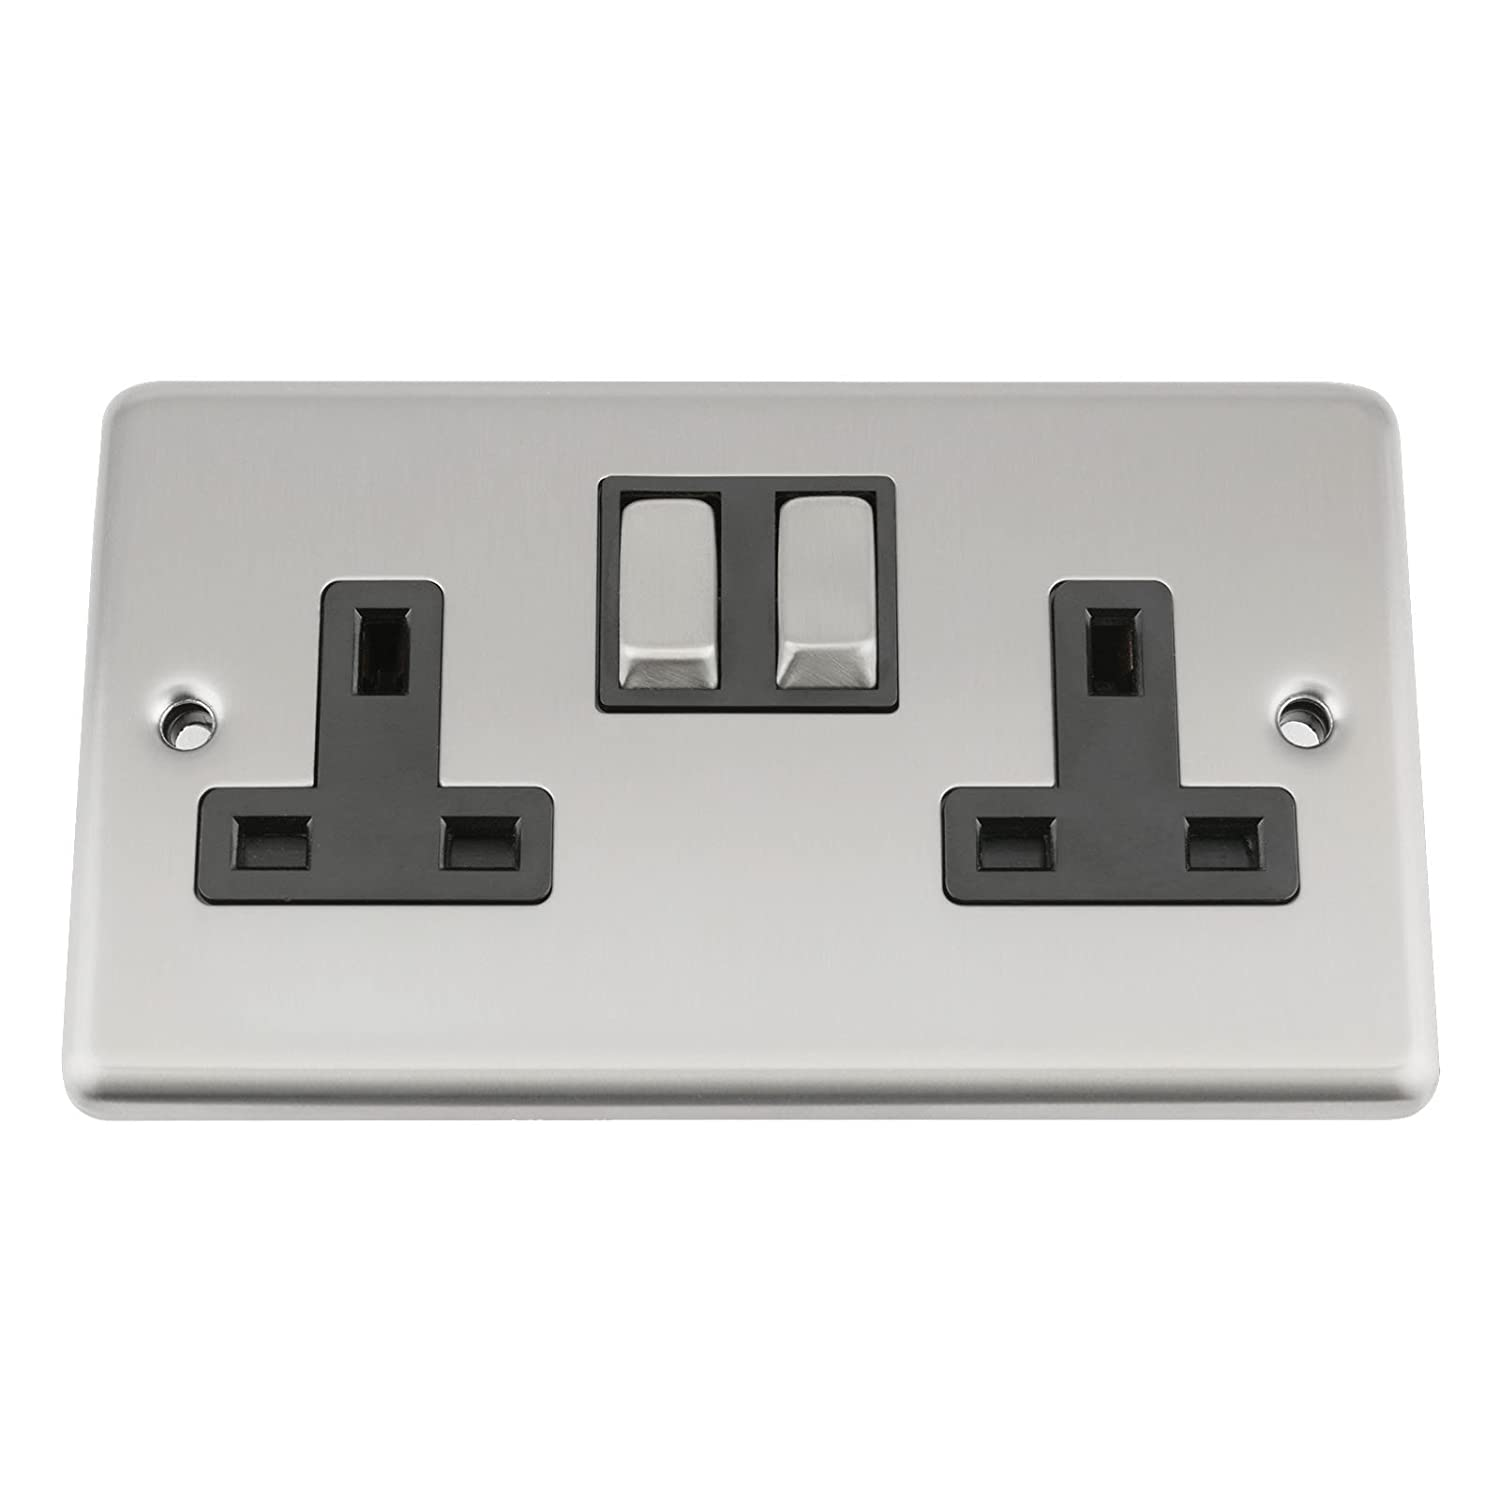 A5 Wall Double Socket 2 Gang - Satin Matt Chrome Classic - Black Insert - Metal Rocker Switch A5 Products